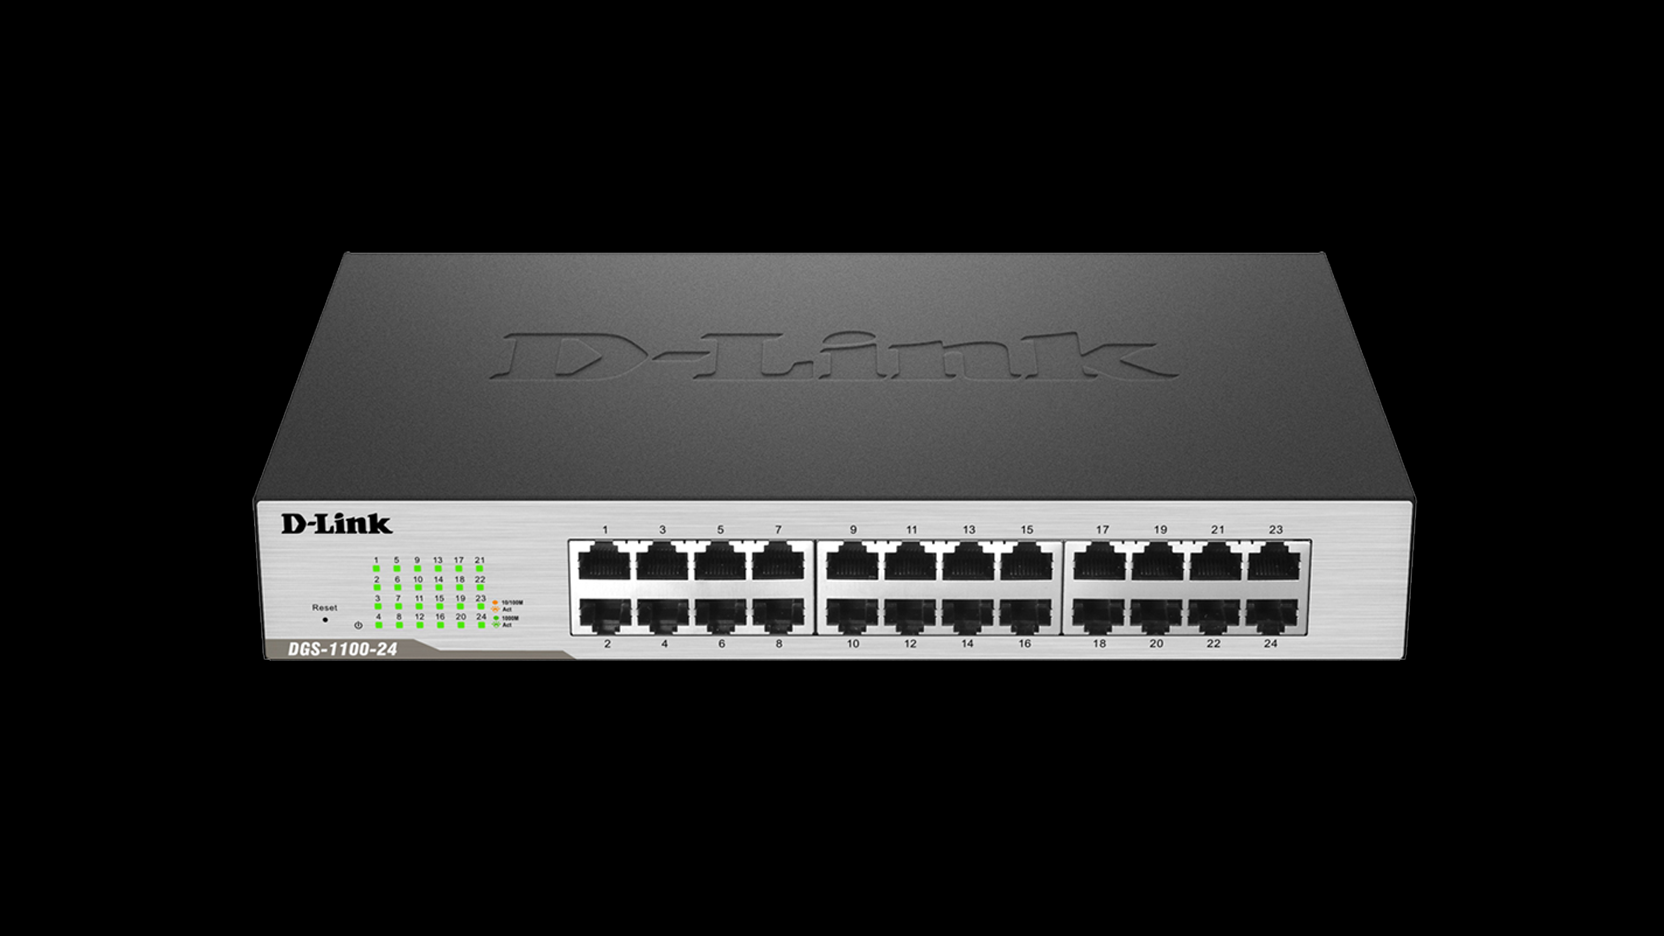 HÁLÓZATI SWITCH DLINK DGS-1100-24 24PORT